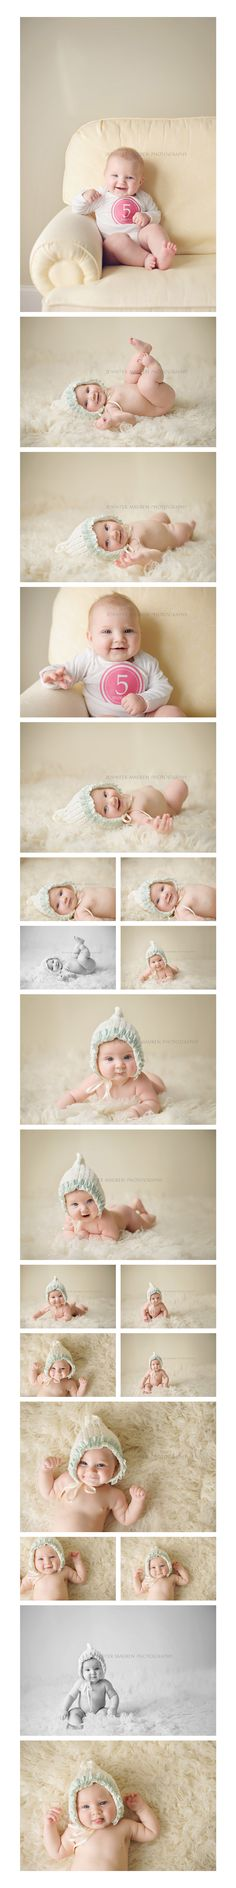 sarasota bradenton lakewood ranch tampa st pete brandon newborn photographer | Jennifer Mauren Photography Bradenton FL